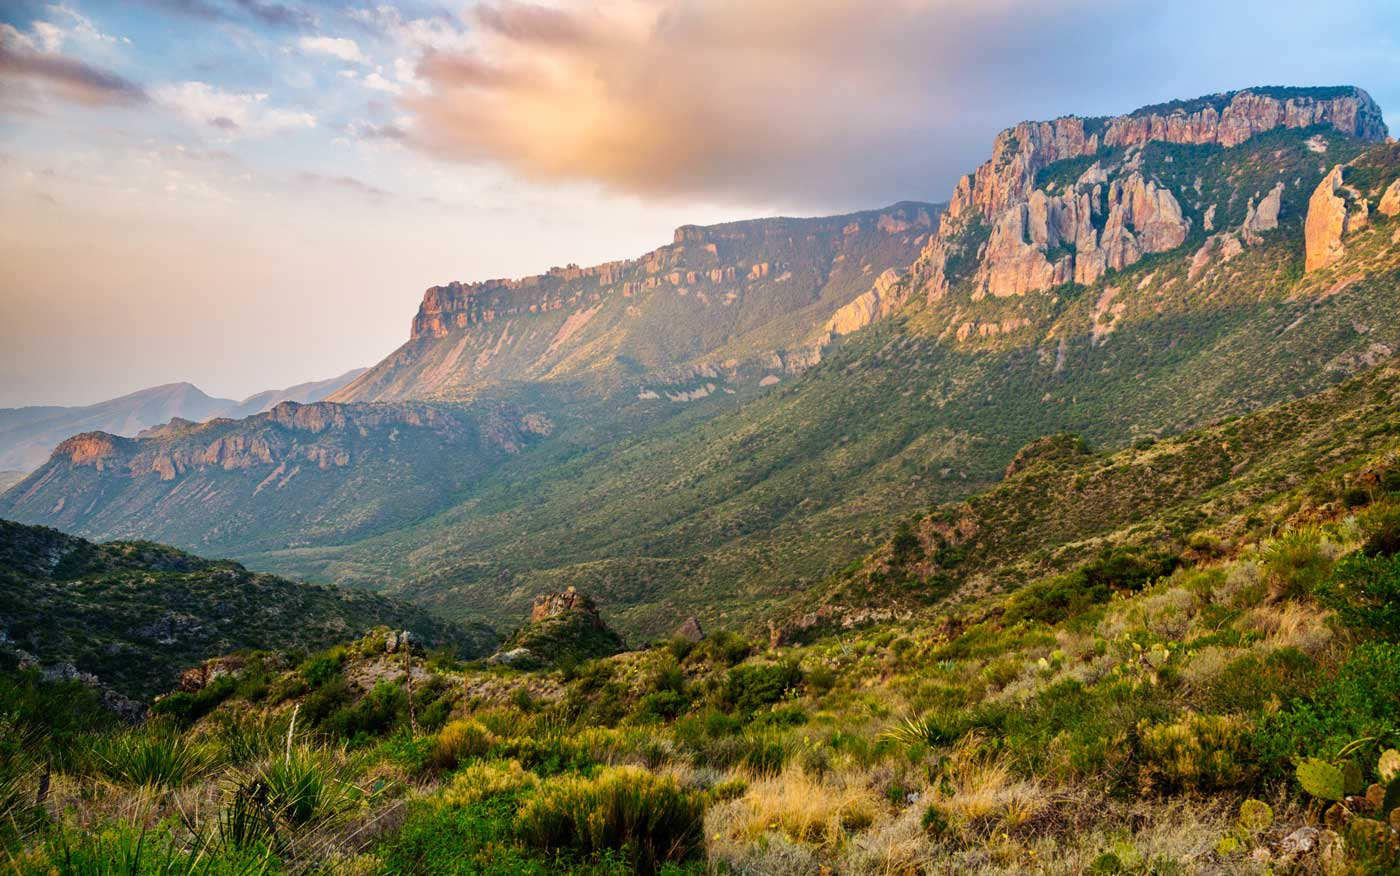 Head to the Border to See Big Bend National Park